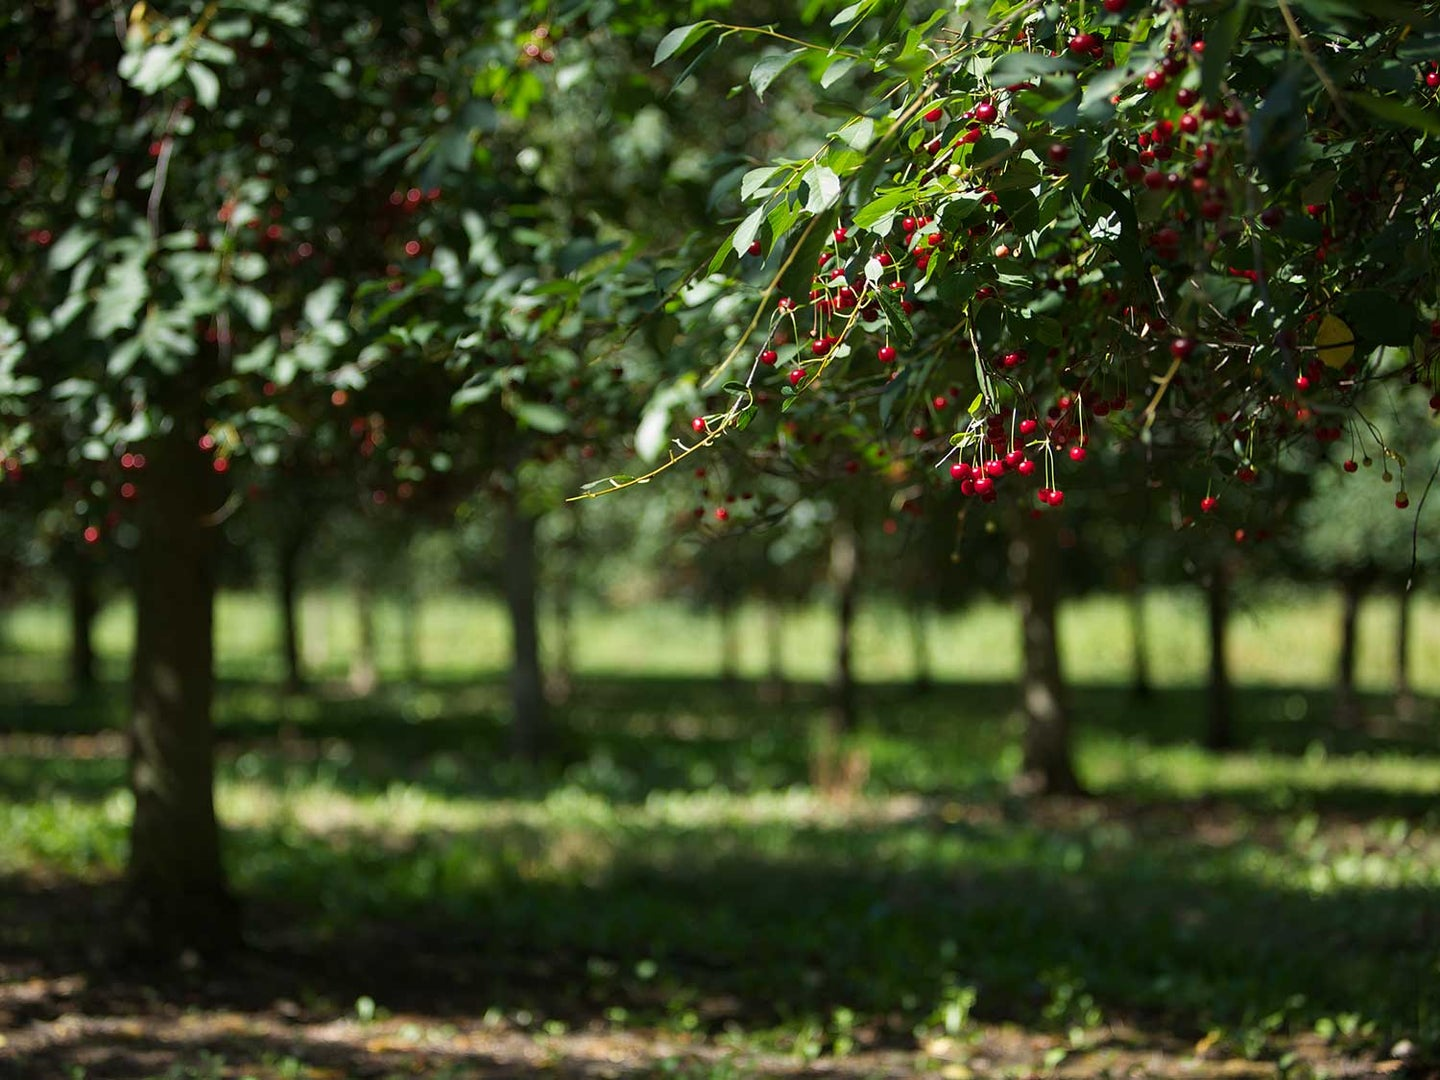 Sour cherries at one of Frederiksdal's orchards.